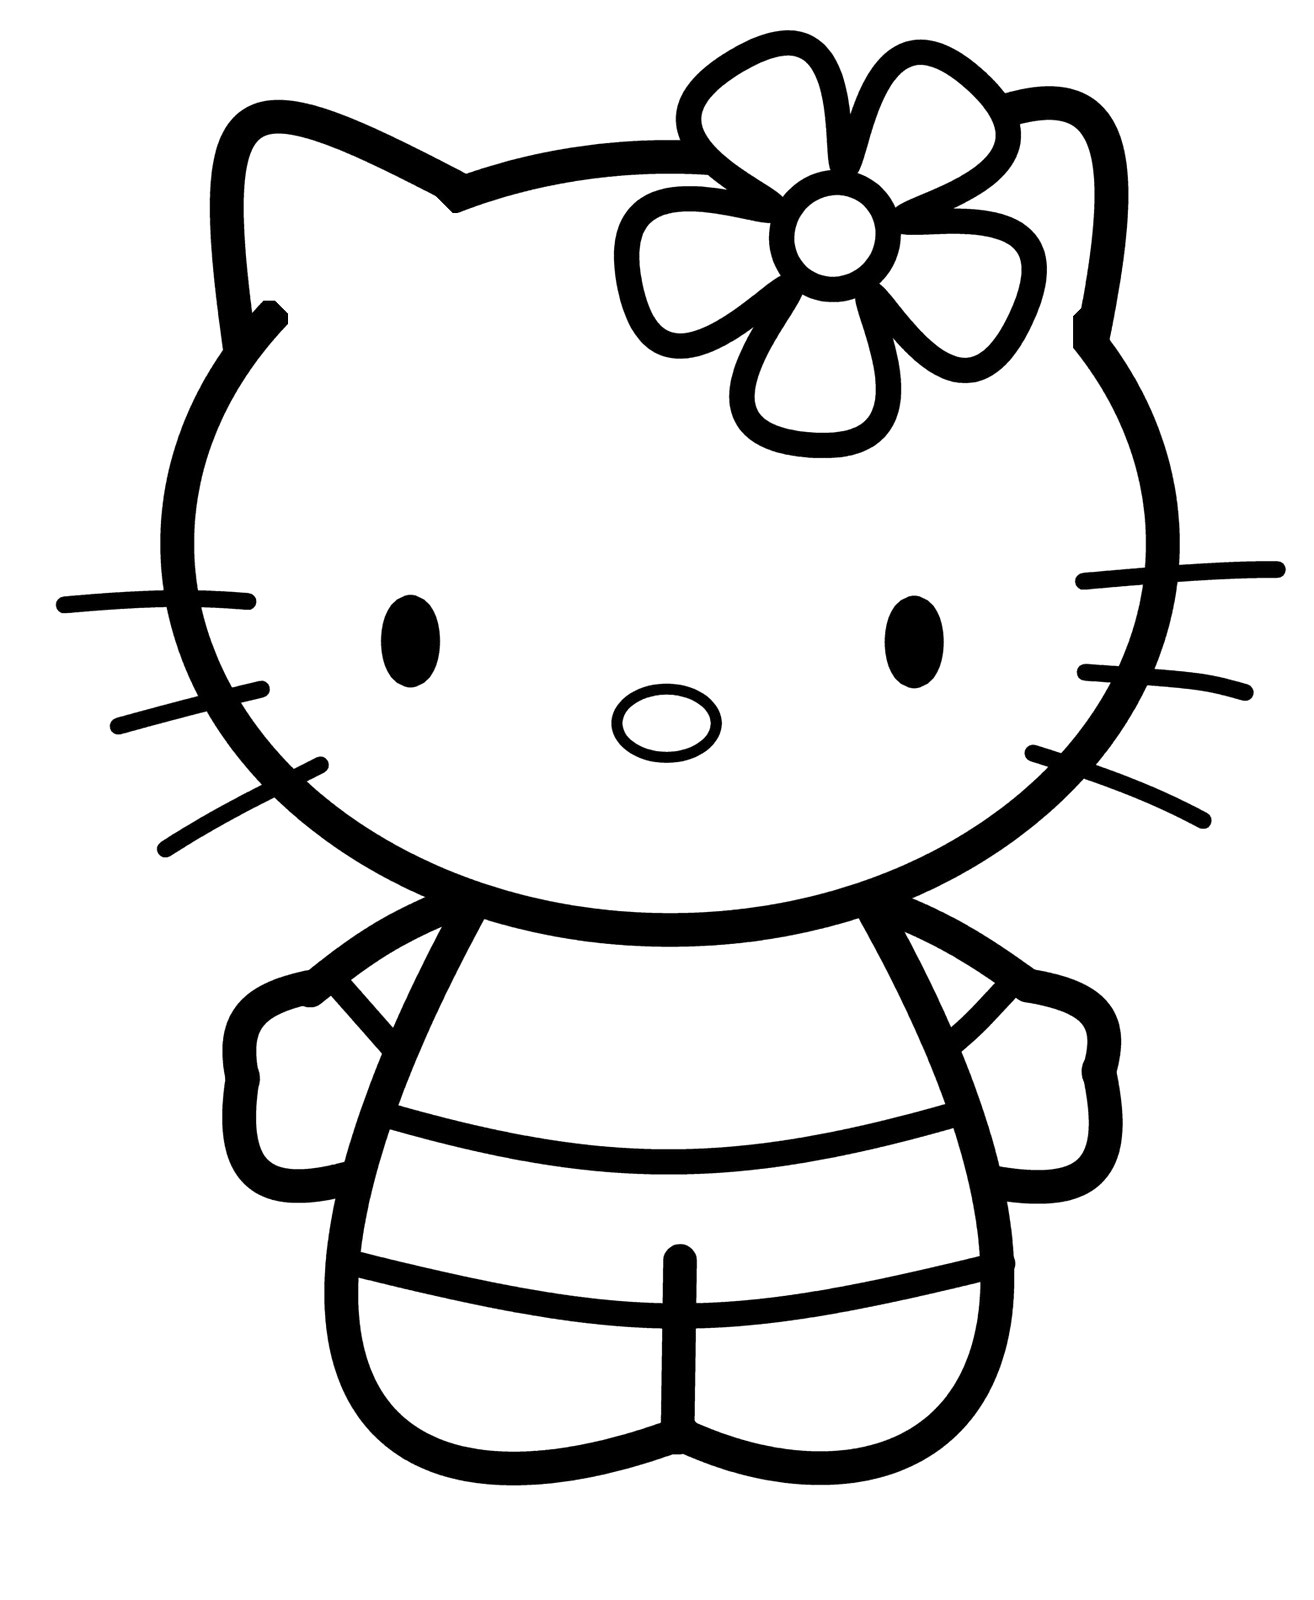 hello kitty outline picture 1000 images about hello kitty images on pinterest hello outline hello picture kitty